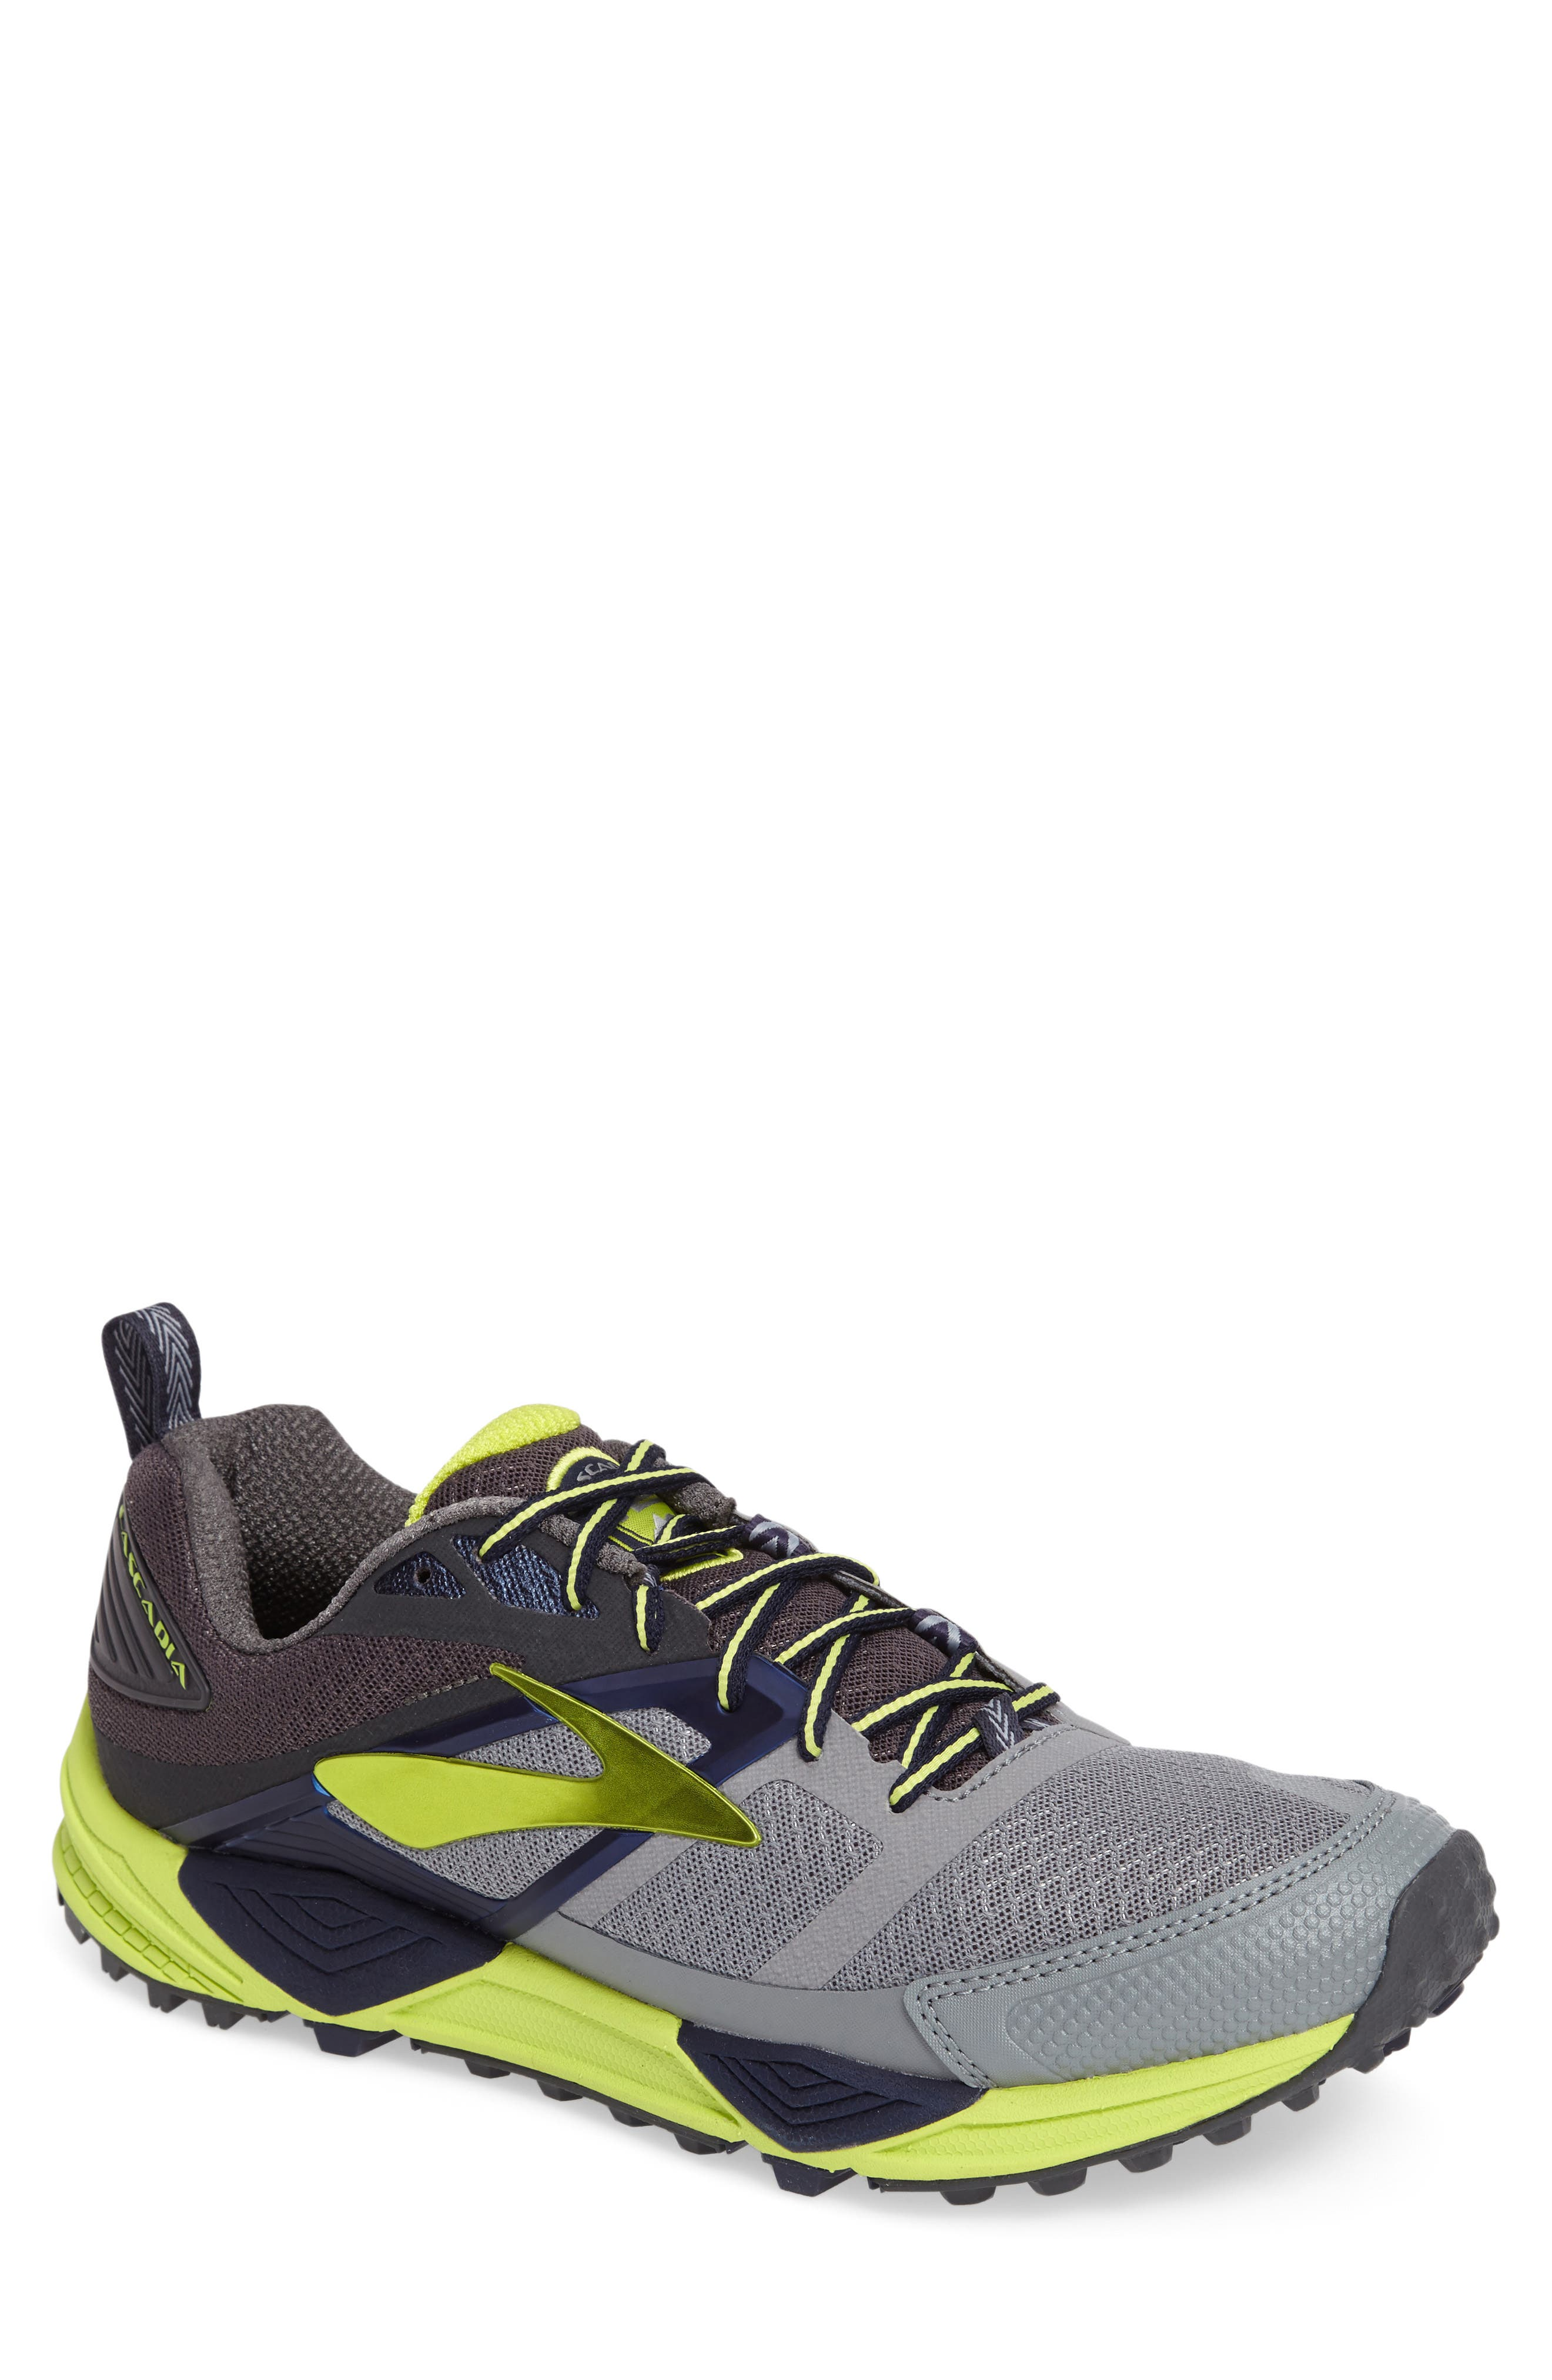 BROOKS Cascadia 12 Trail Running Shoe